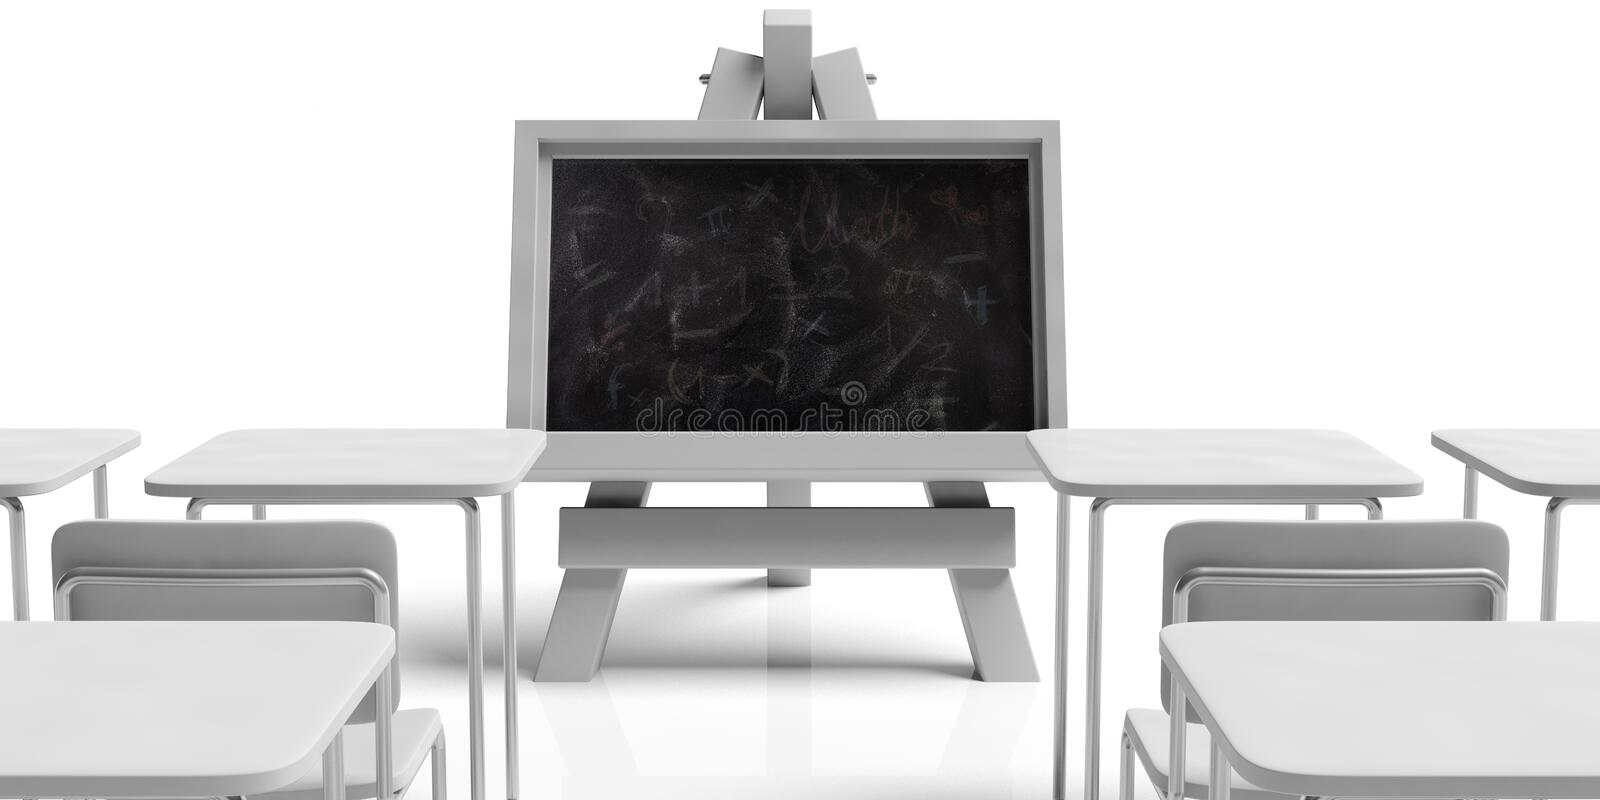 Education concept. Blackboard on folding wooden easel, in empty classroom with school desks, against white background, 3d vector illustration